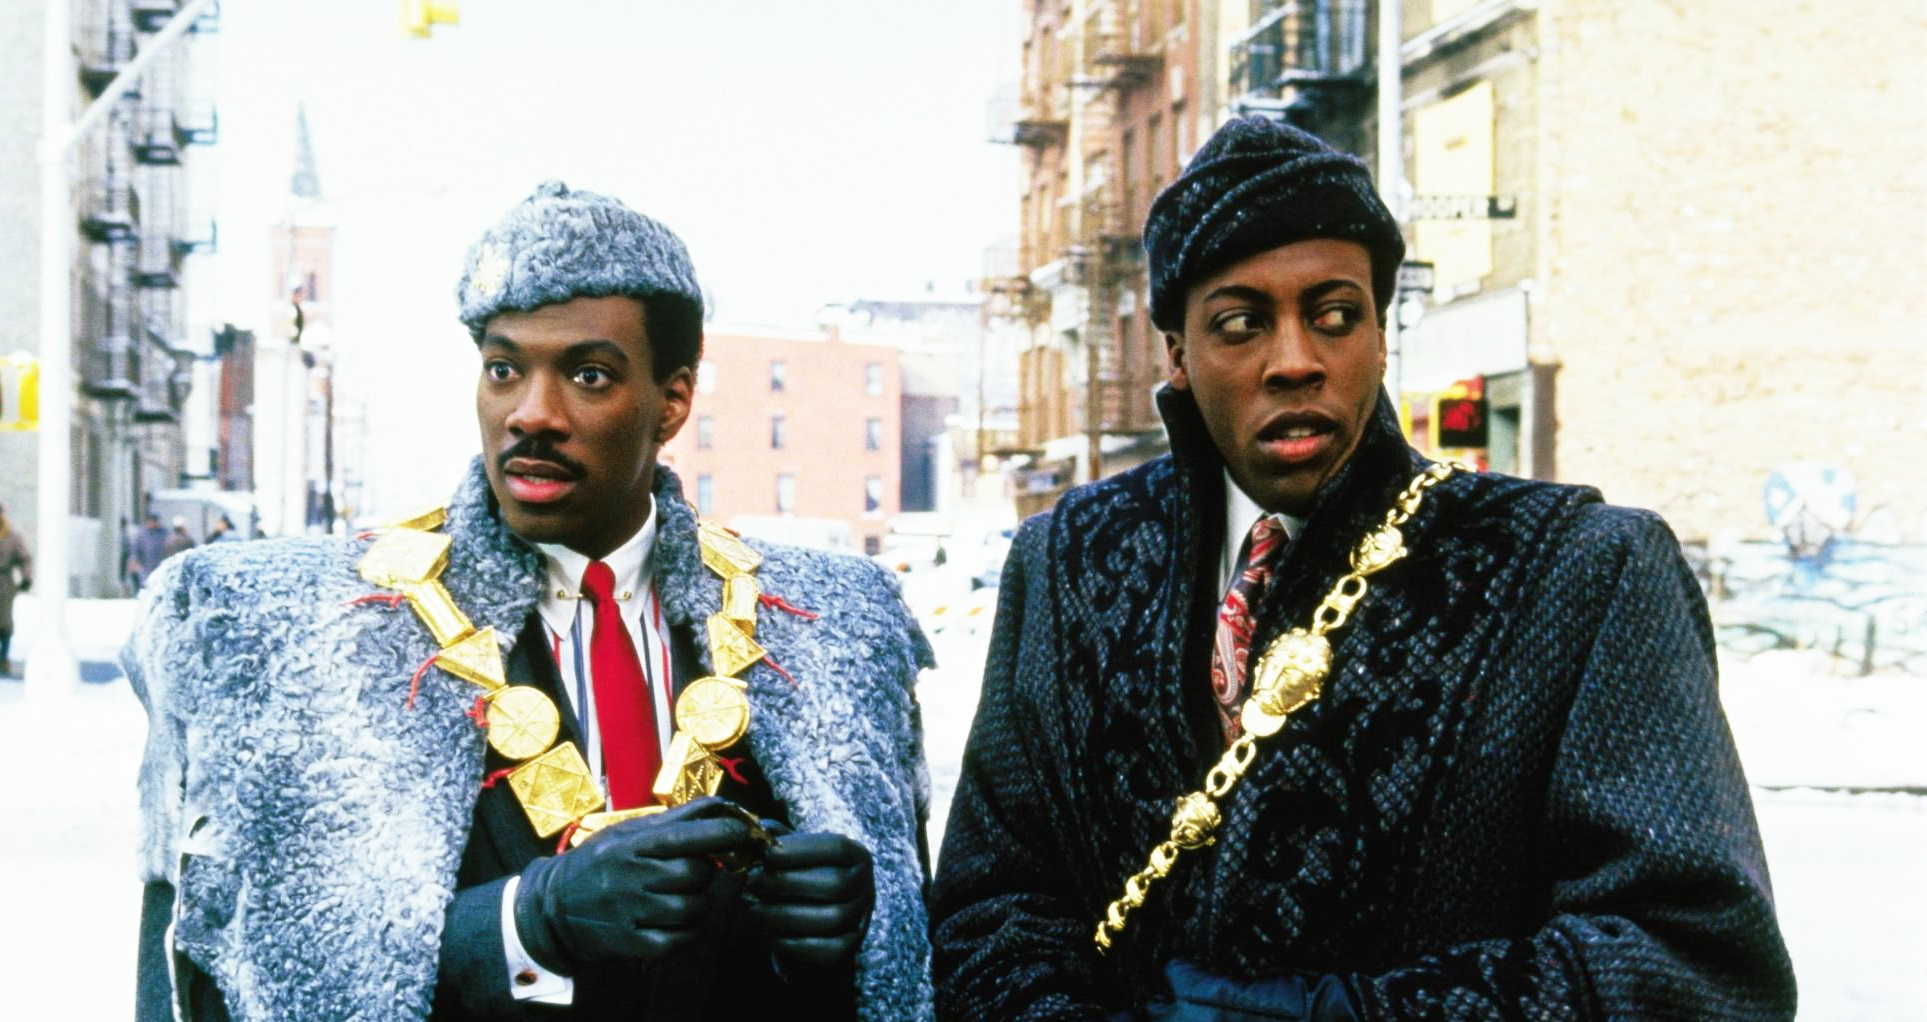 Paramount's 'Coming to America' Sequel Risks Being Out of Touch — Opinion